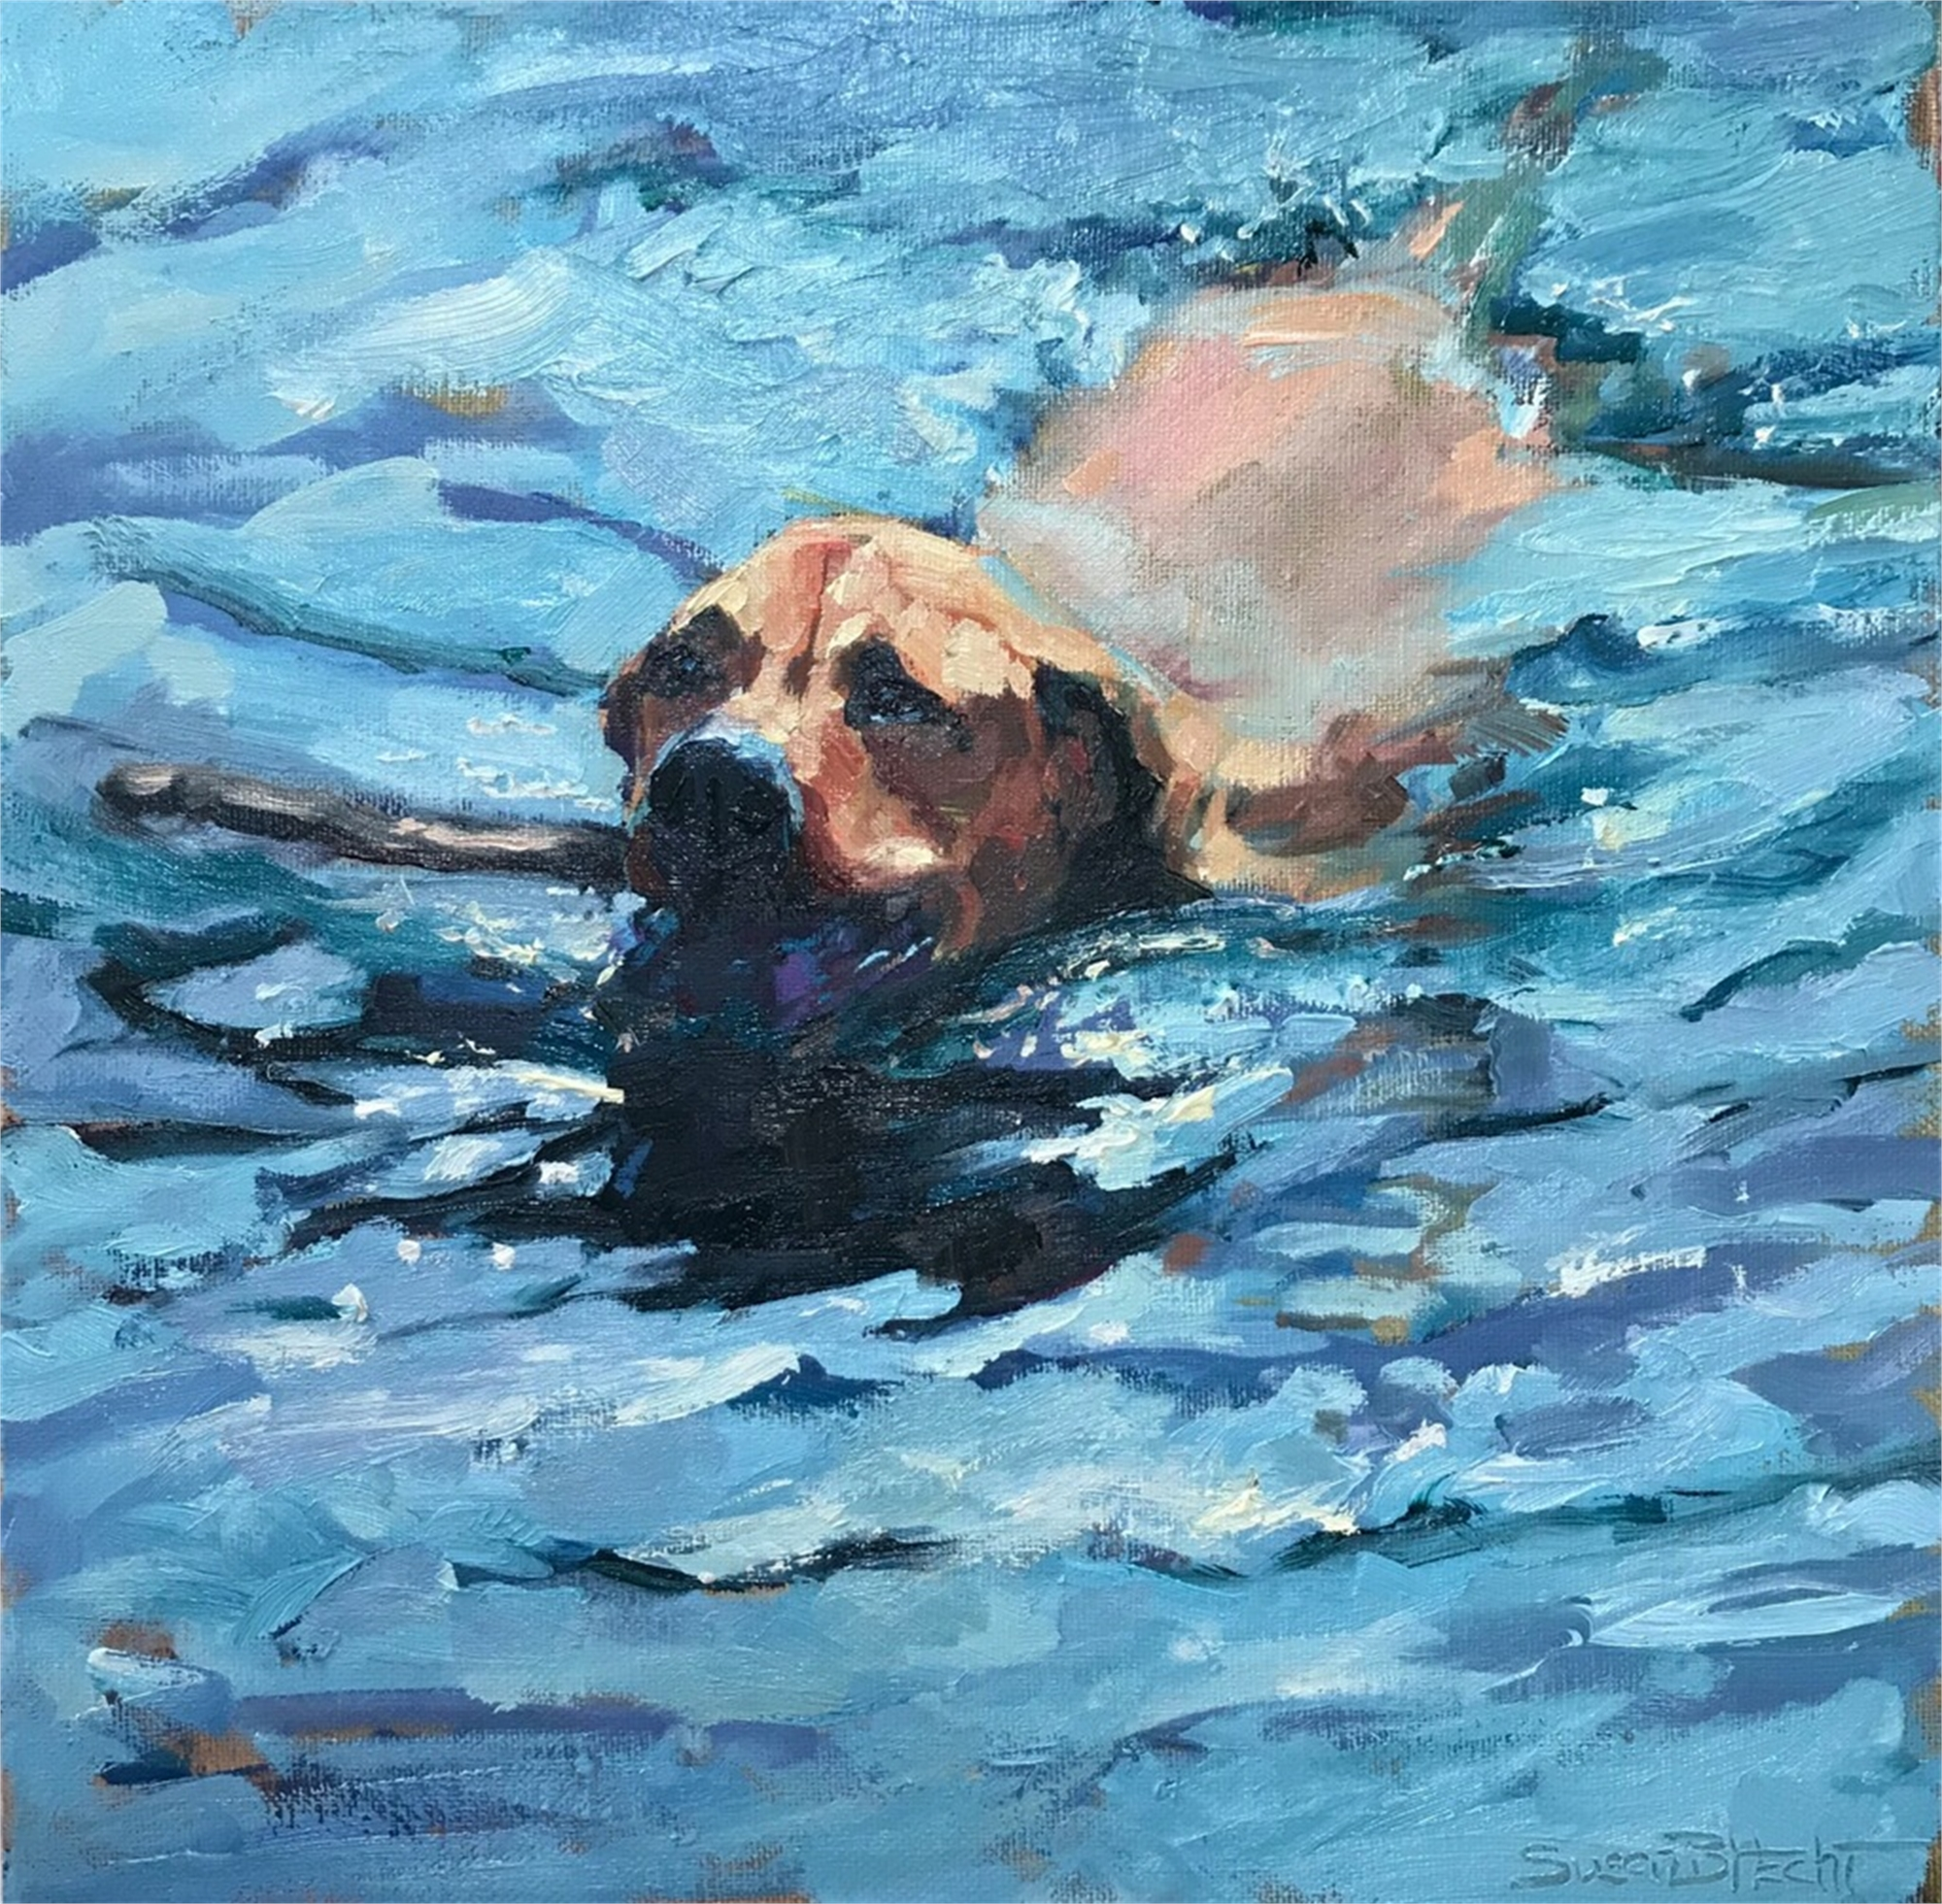 Fetching by Susan Hecht